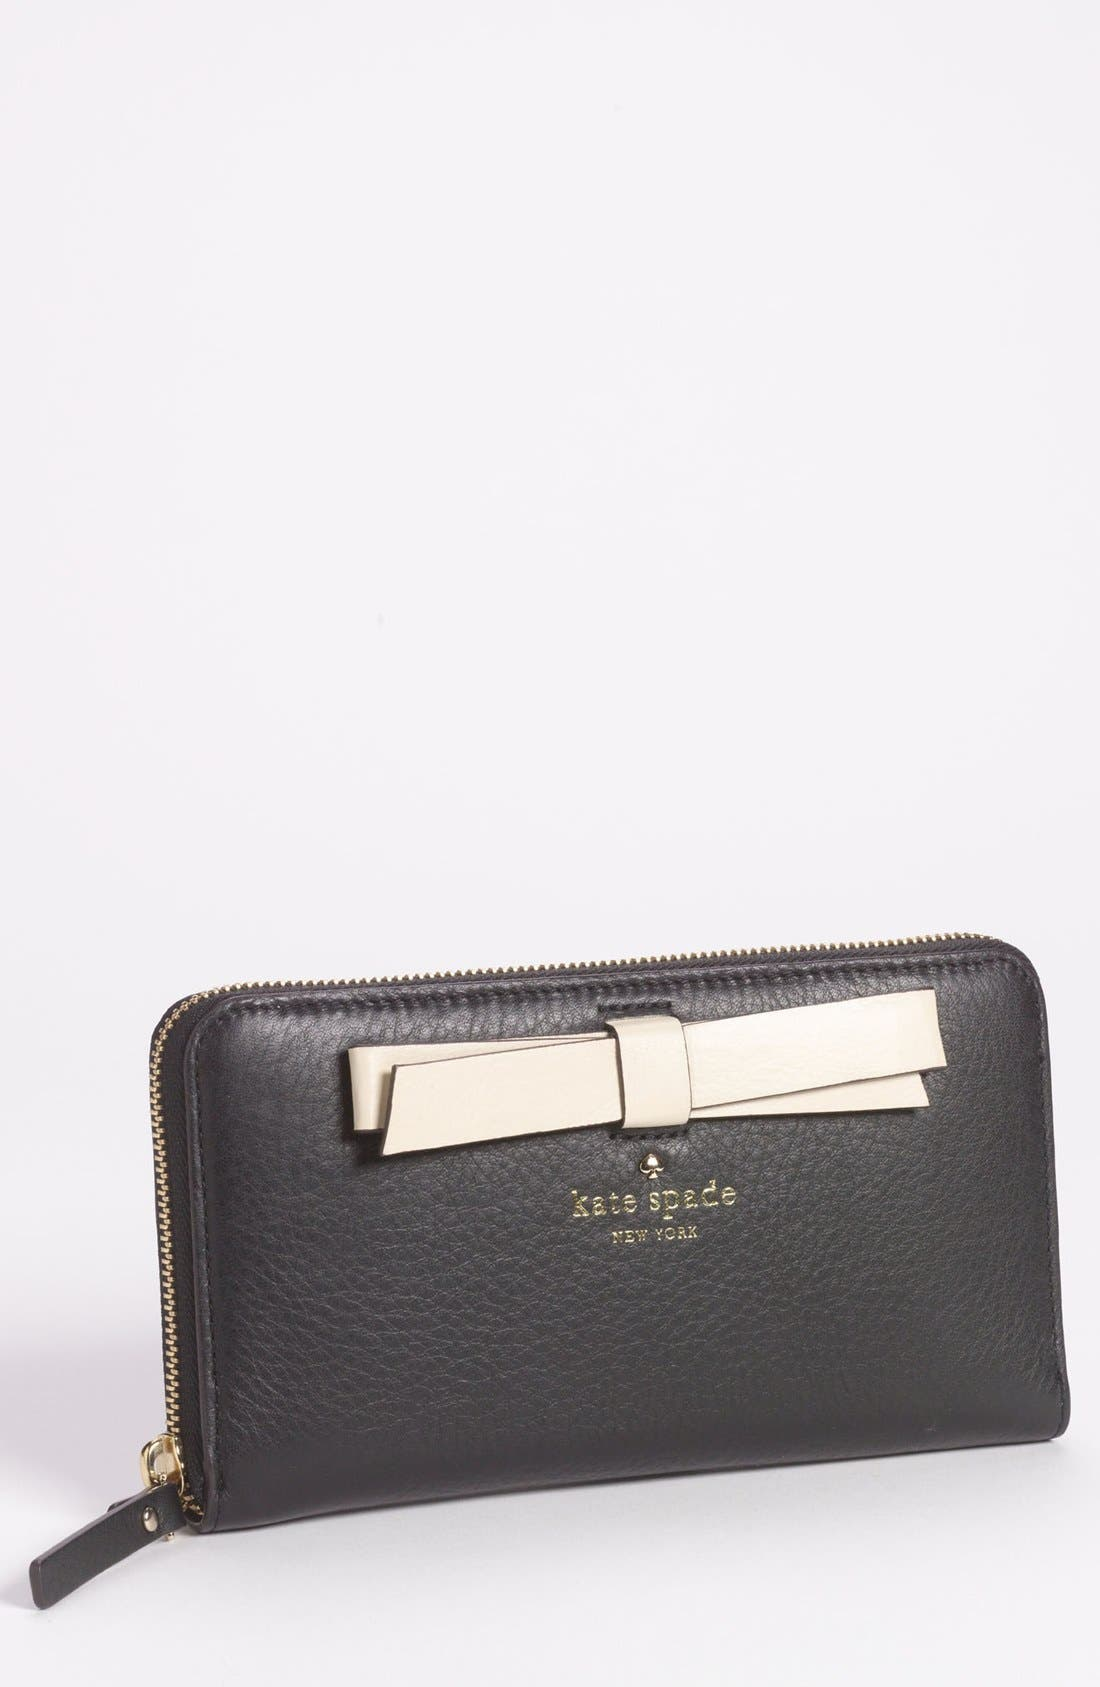 Alternate Image 1 Selected - kate spade new york 'hancock park - lacey' leather zip wallet